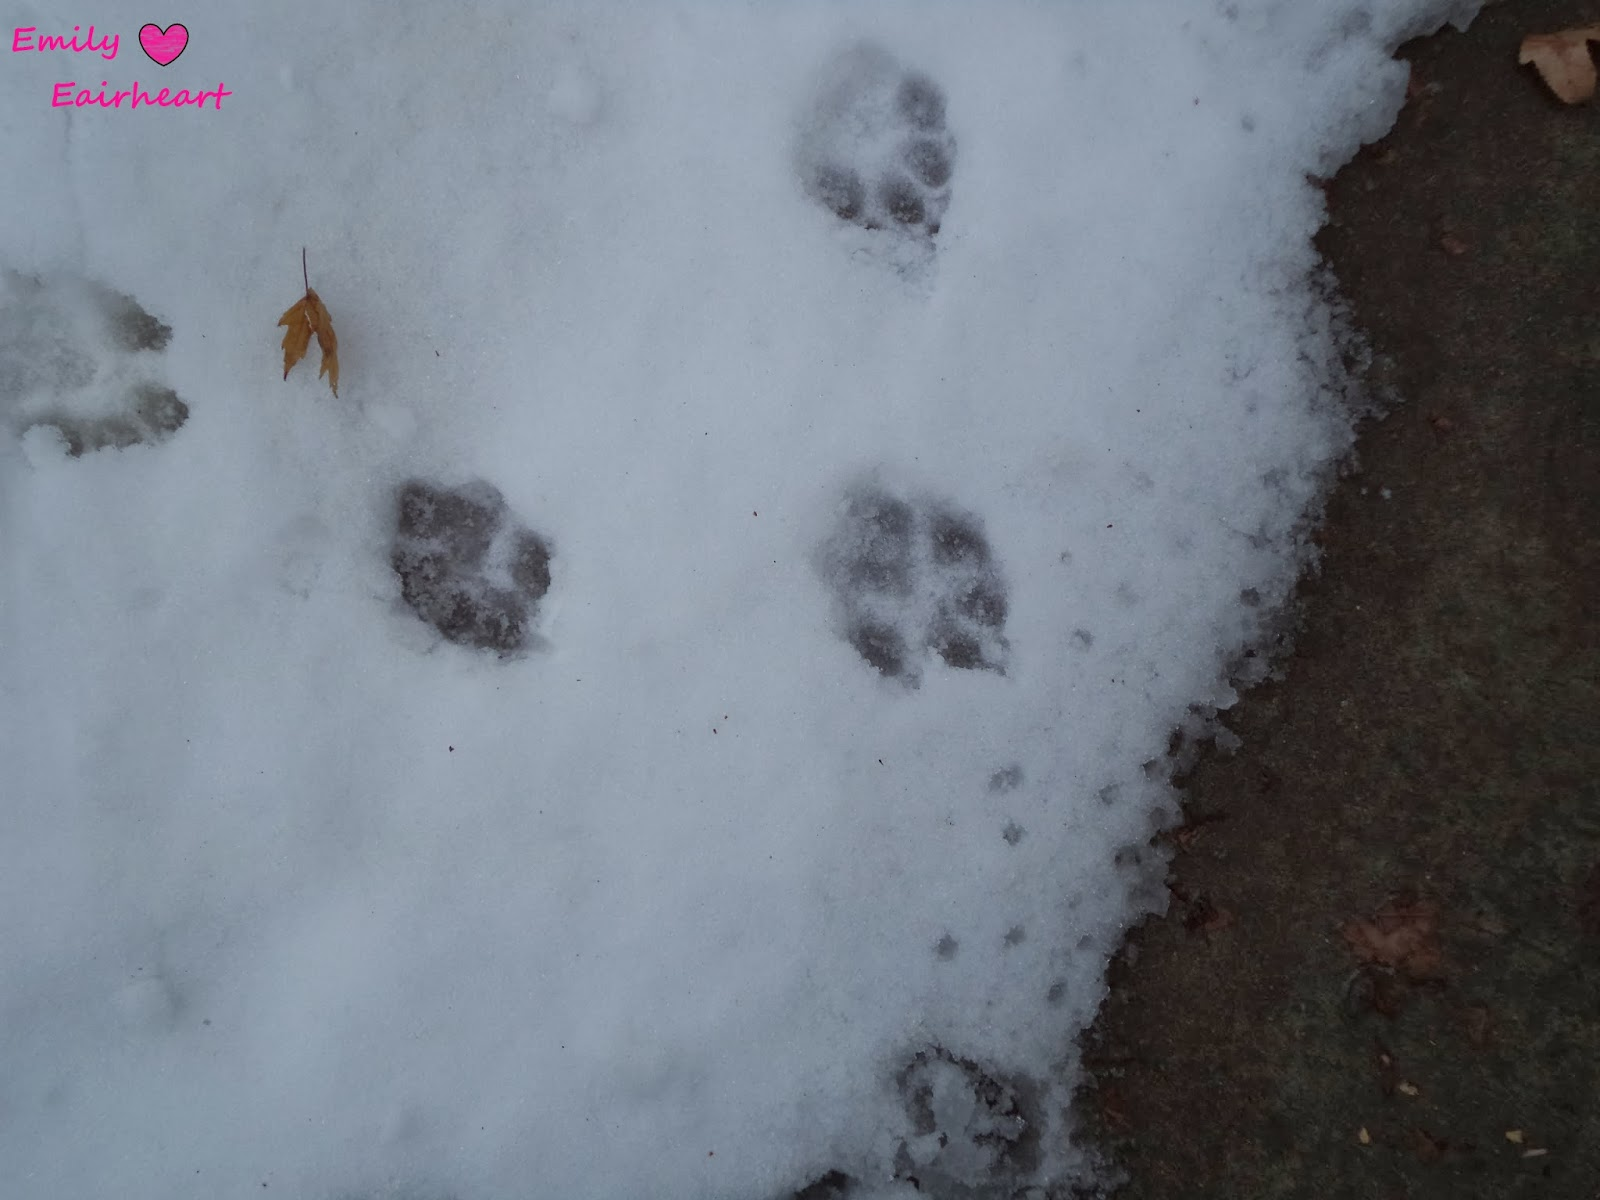 German Shepherd and Golden Retriever Mix paw prints in the snow.